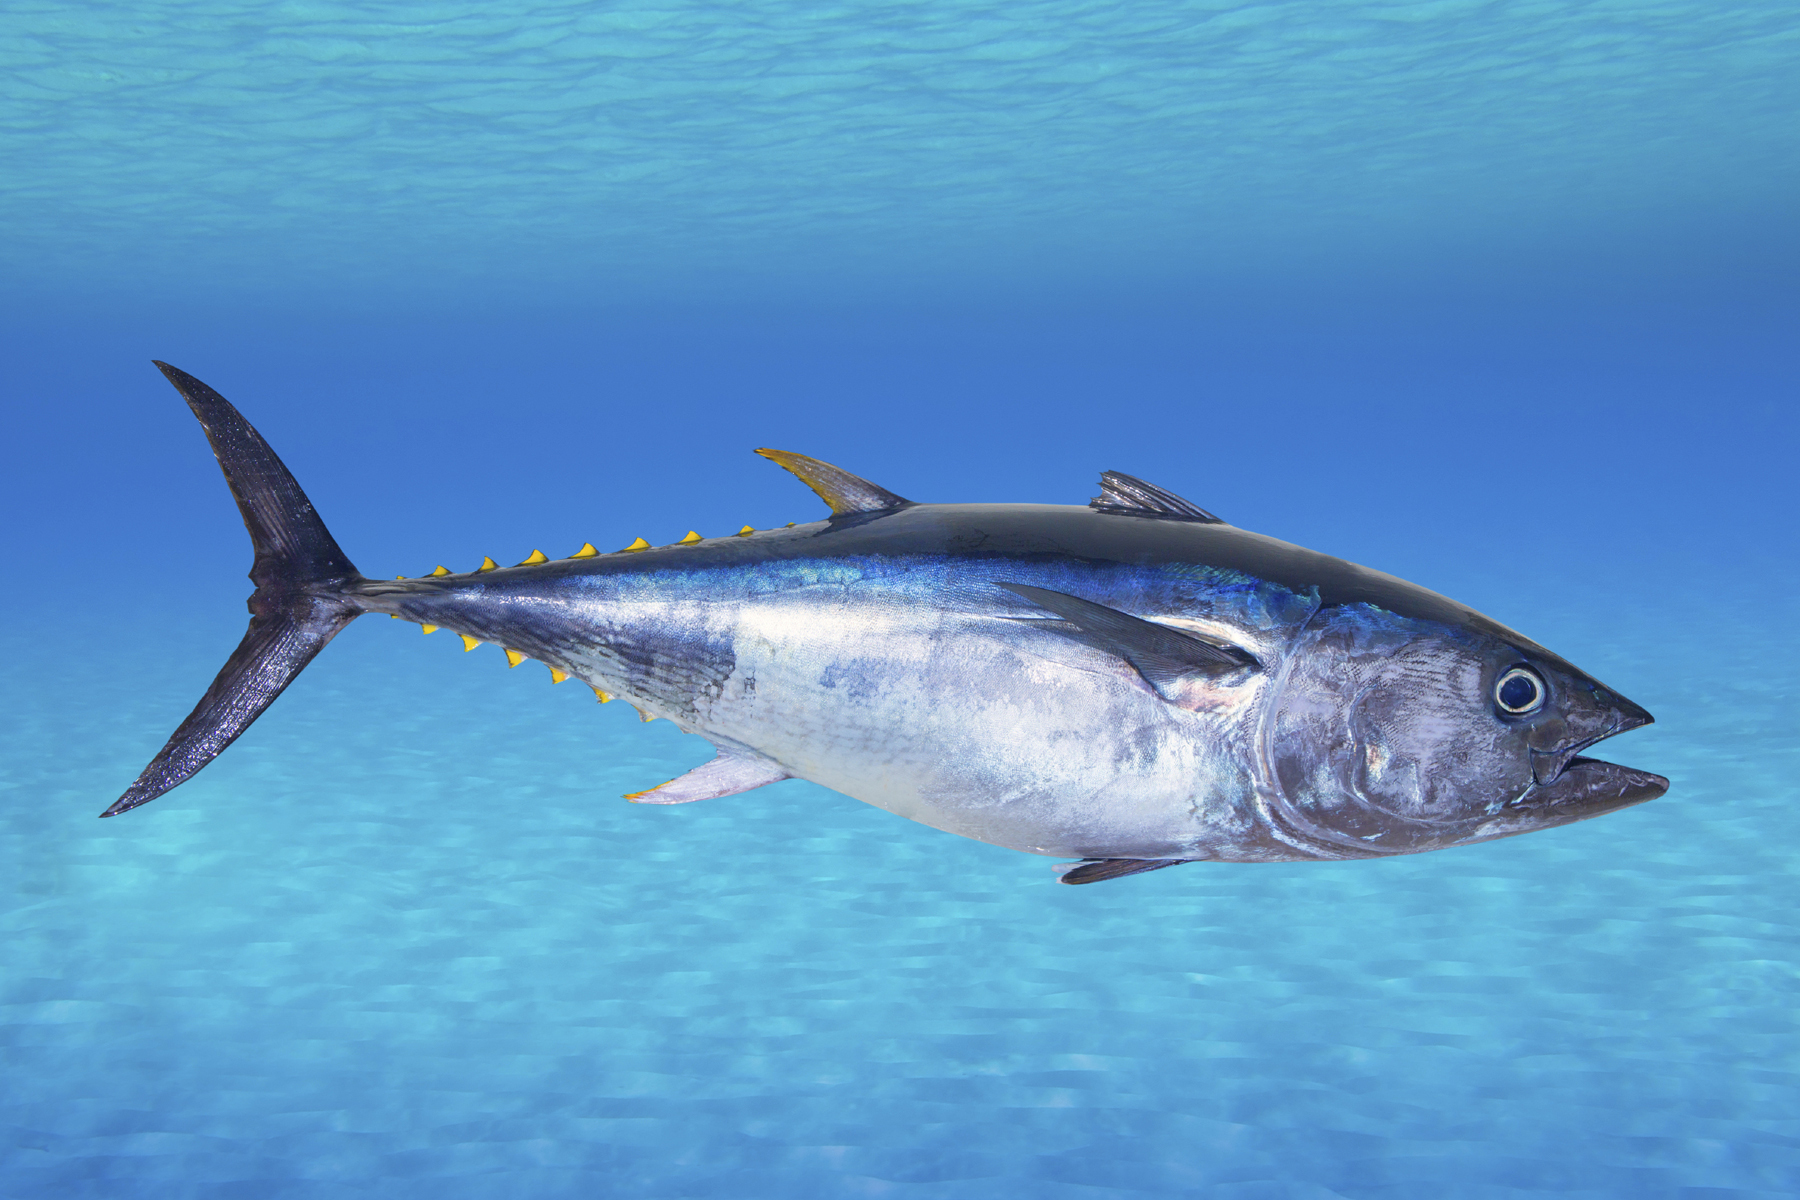 fishing blue fin tuna into extinction Edit article how to catch bluefin tuna three parts: set your bait and wait for your catch hooking the bluefin other recommendations community q&a bluefin tuna range from 300 to 1000+ pounds, and catching them delivers a physical fight and a massive adrenaline rush.